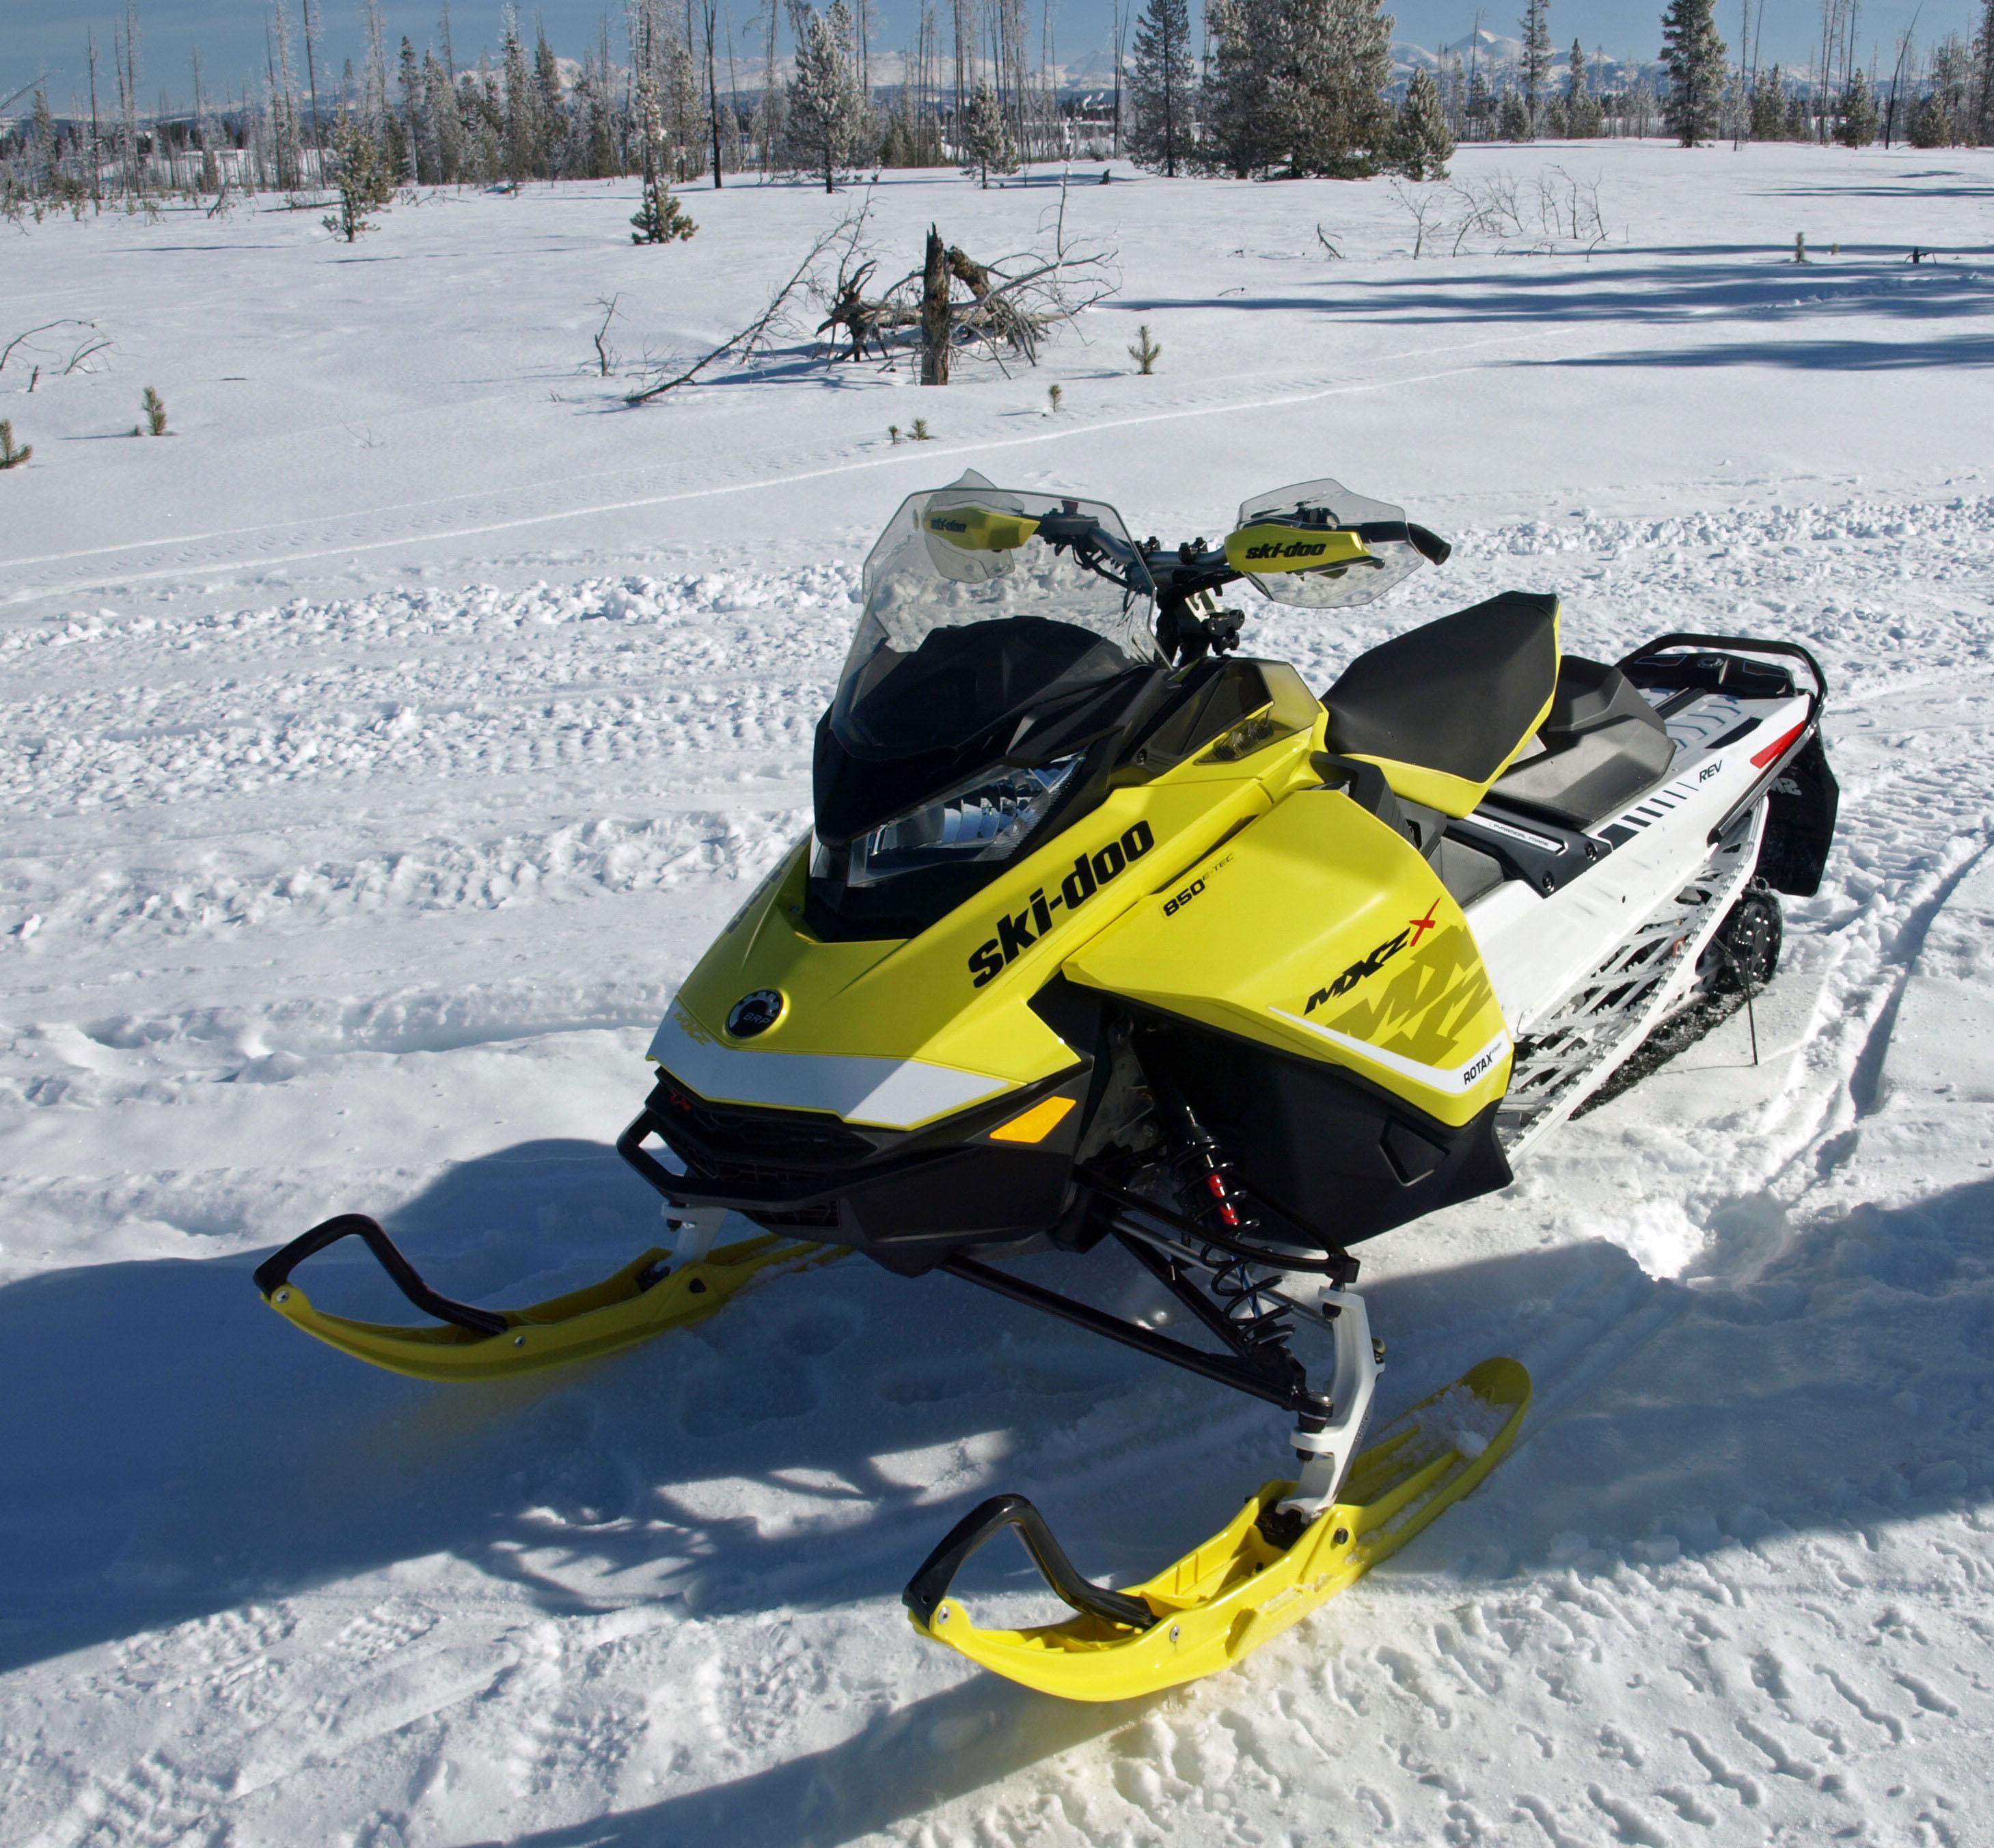 Impressions On The 2017 Ski Doo 850s And Yamaha Sidewinder